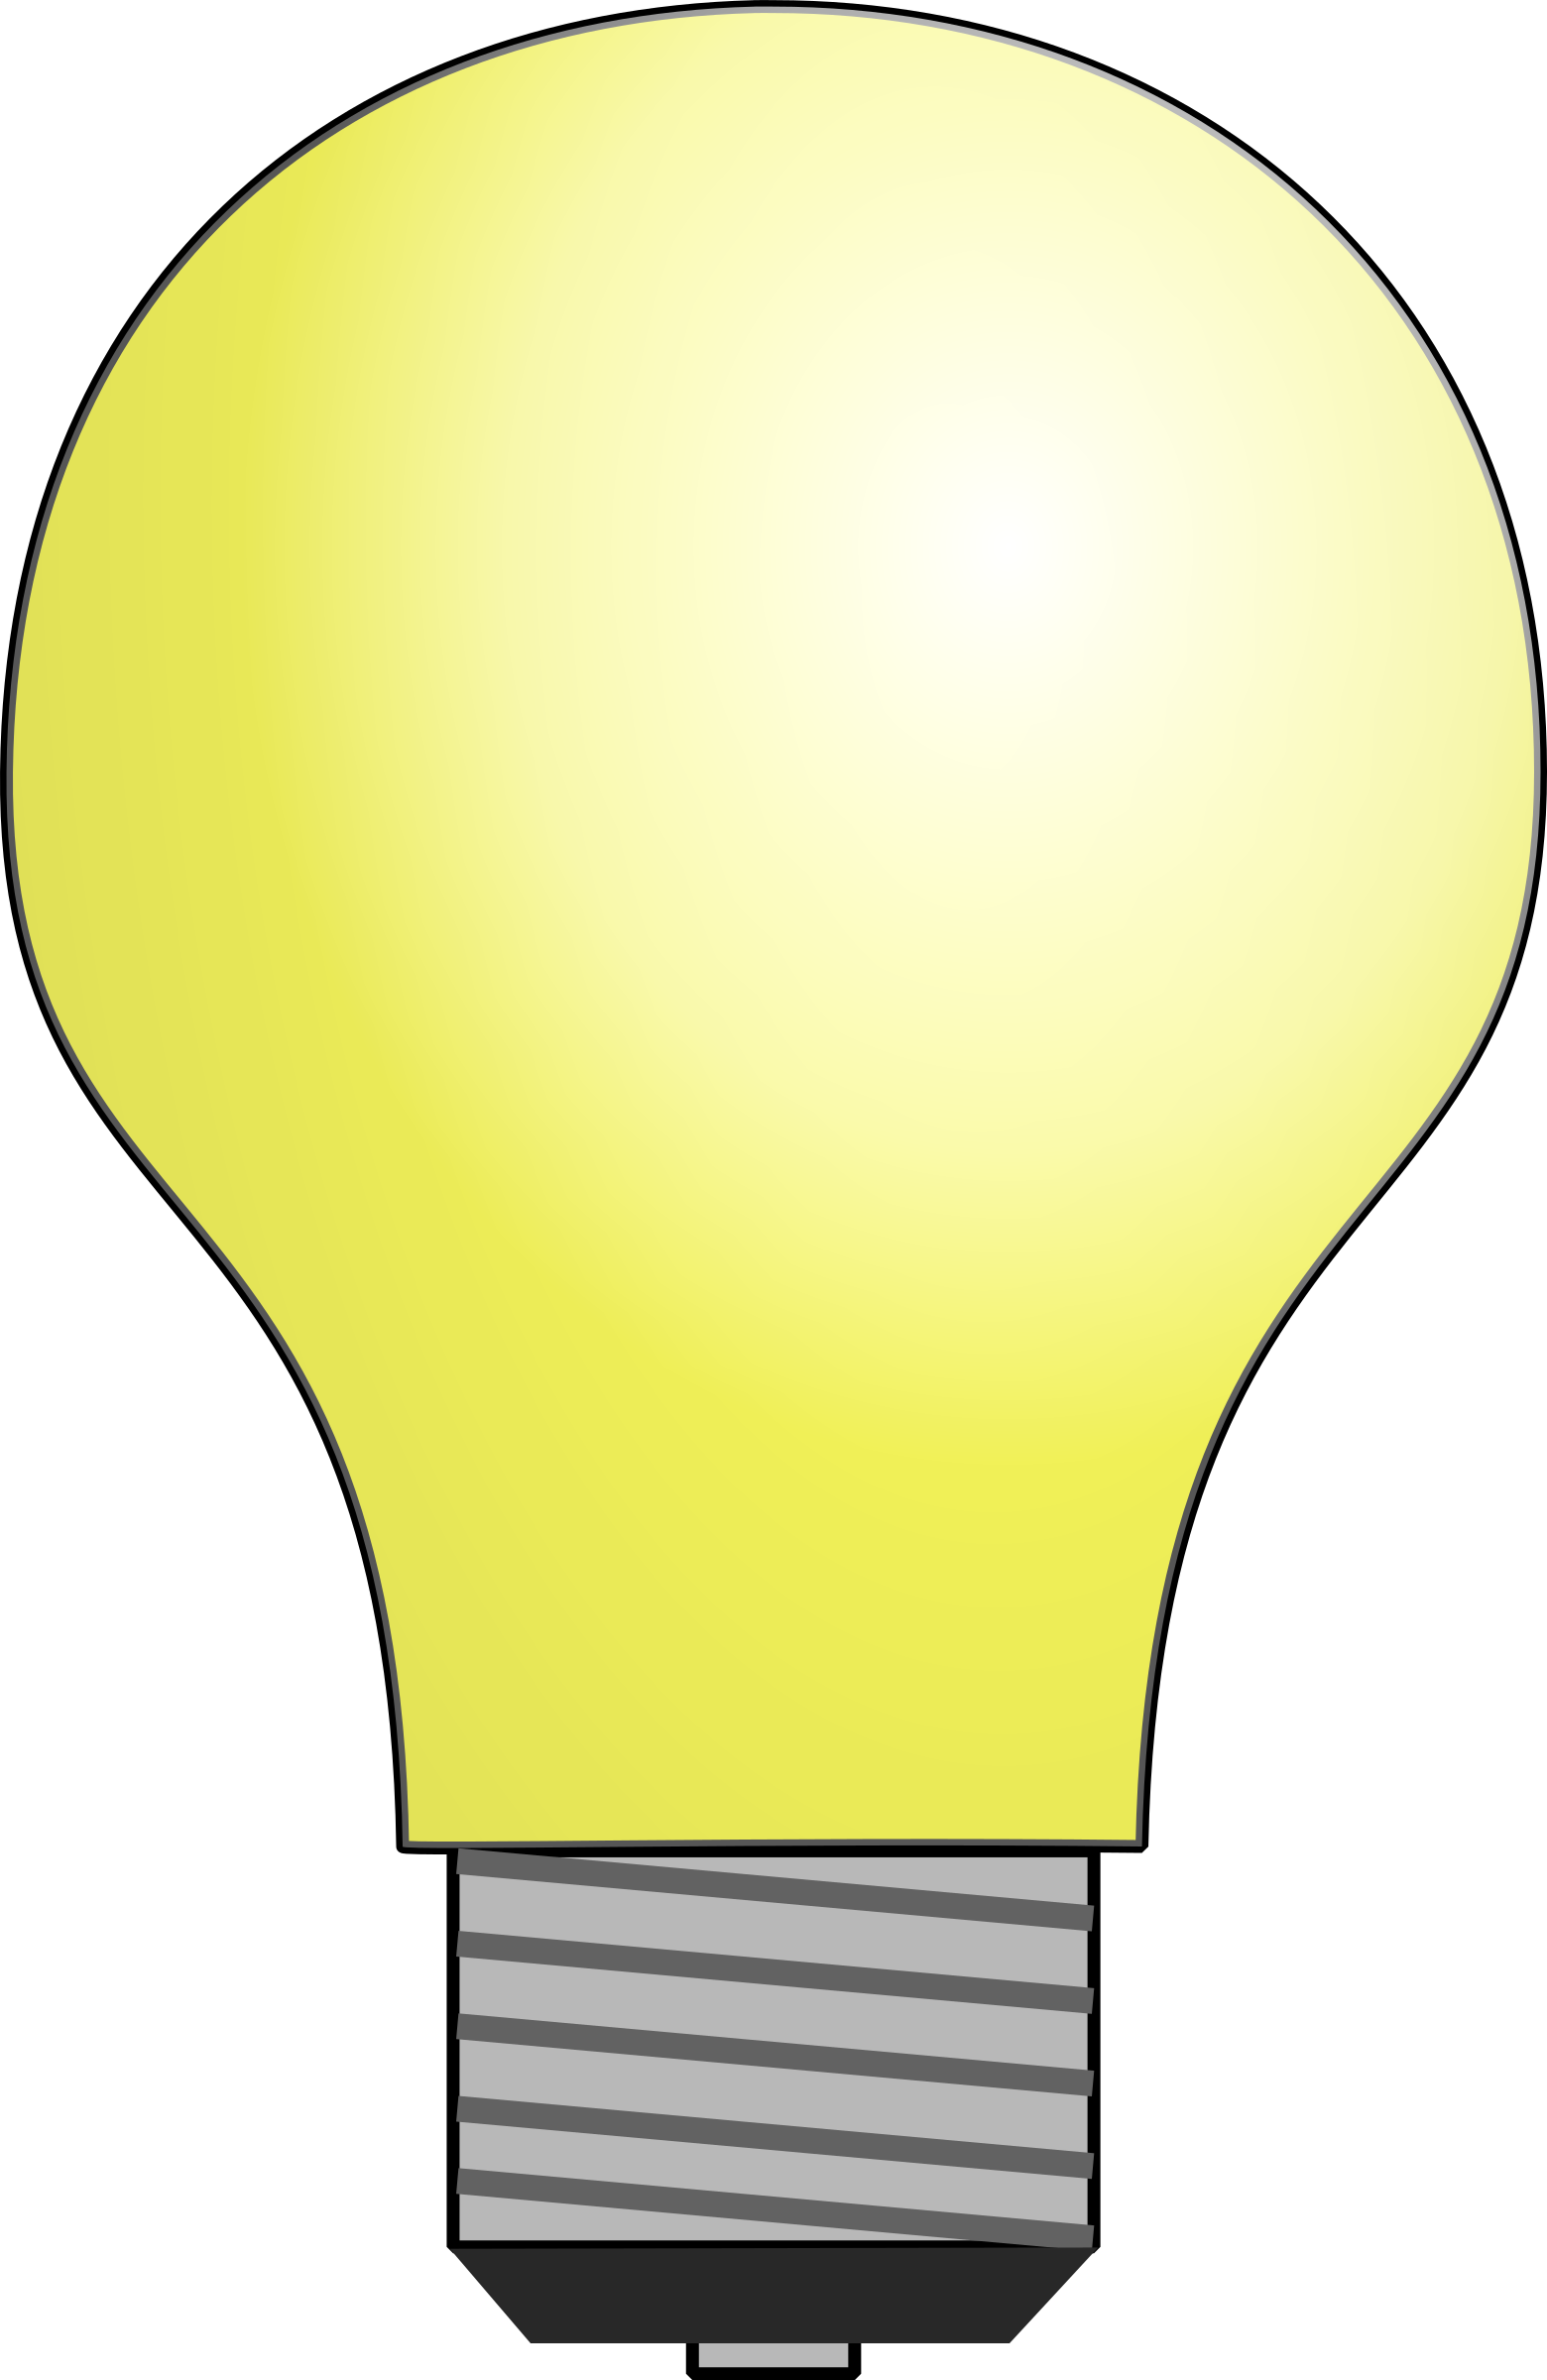 light bulb by cafuego